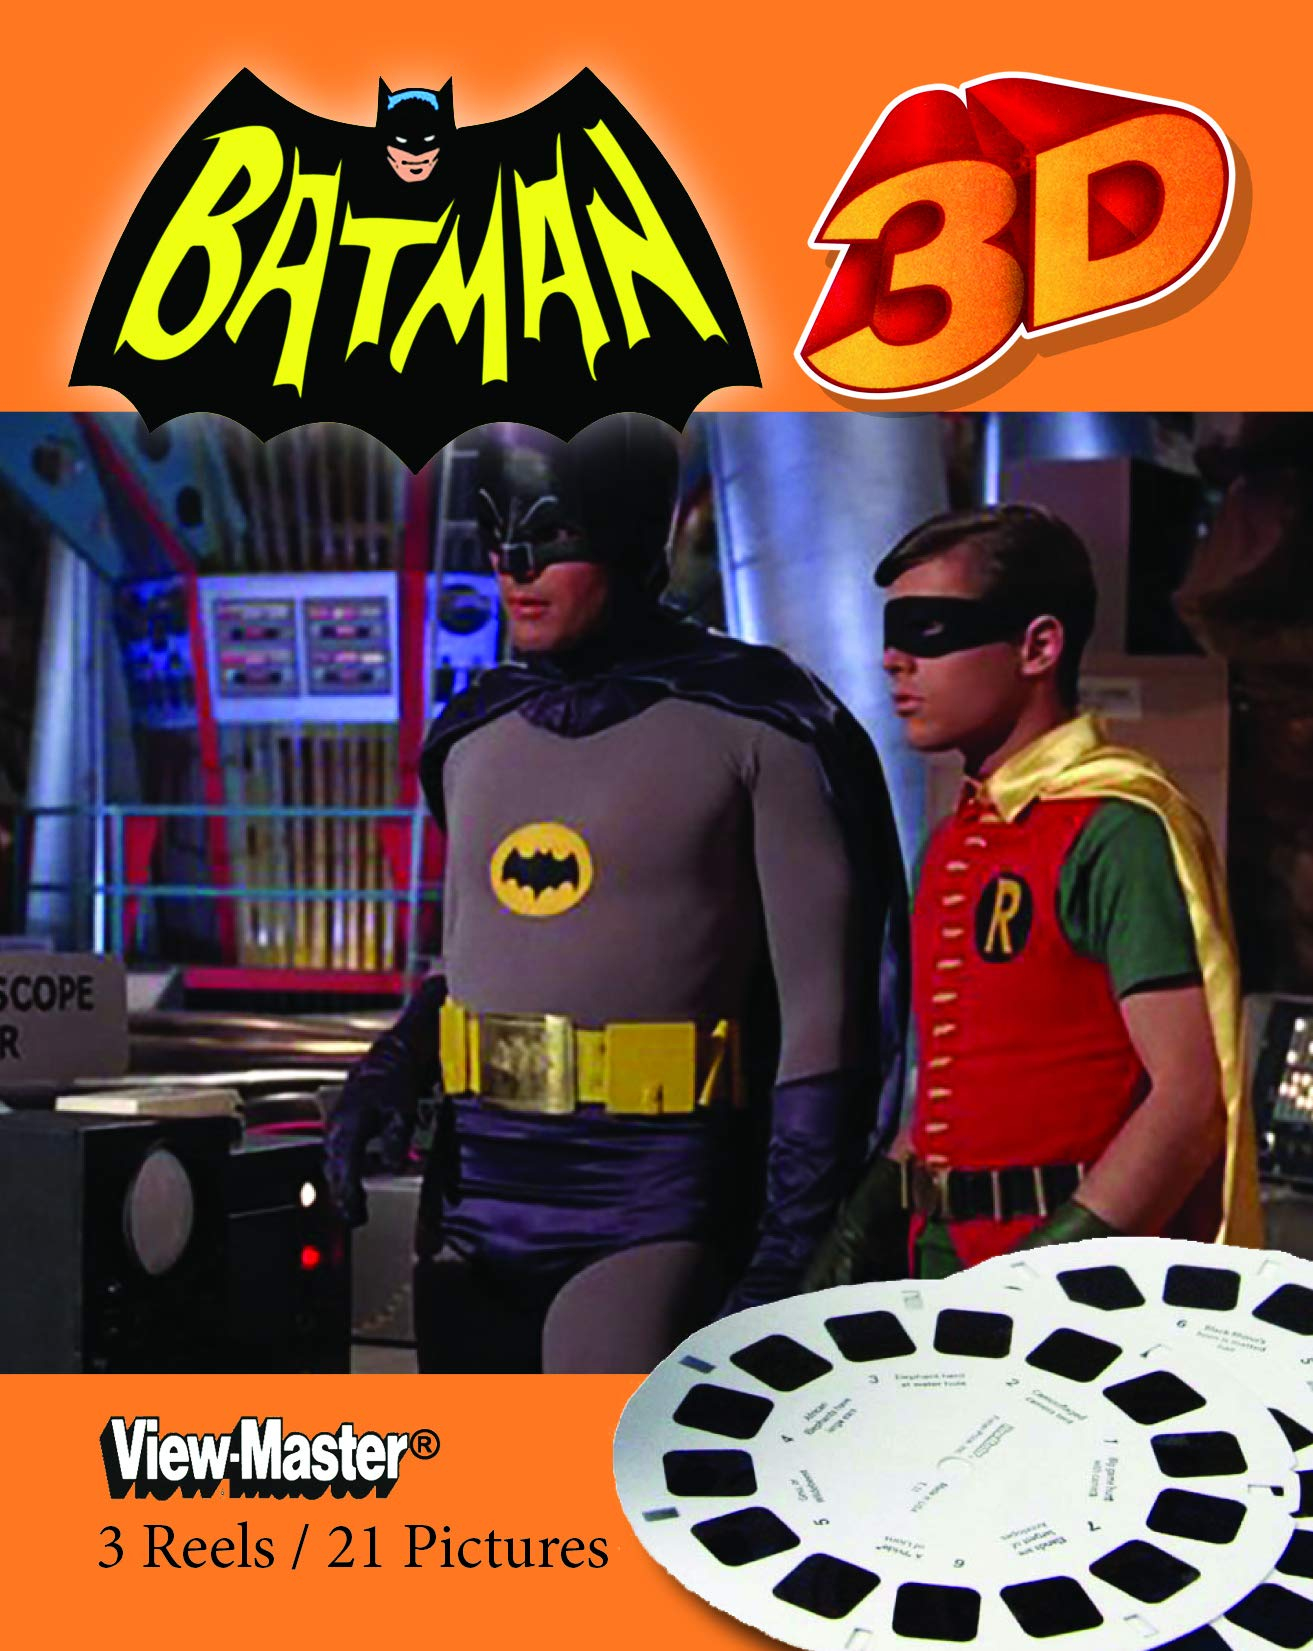 Classic ViewMaster - Batman - 1960s TV Show - 3 Reel Packet - Unsold store stock - never opened by 3Dstereo ViewMaster (Image #1)